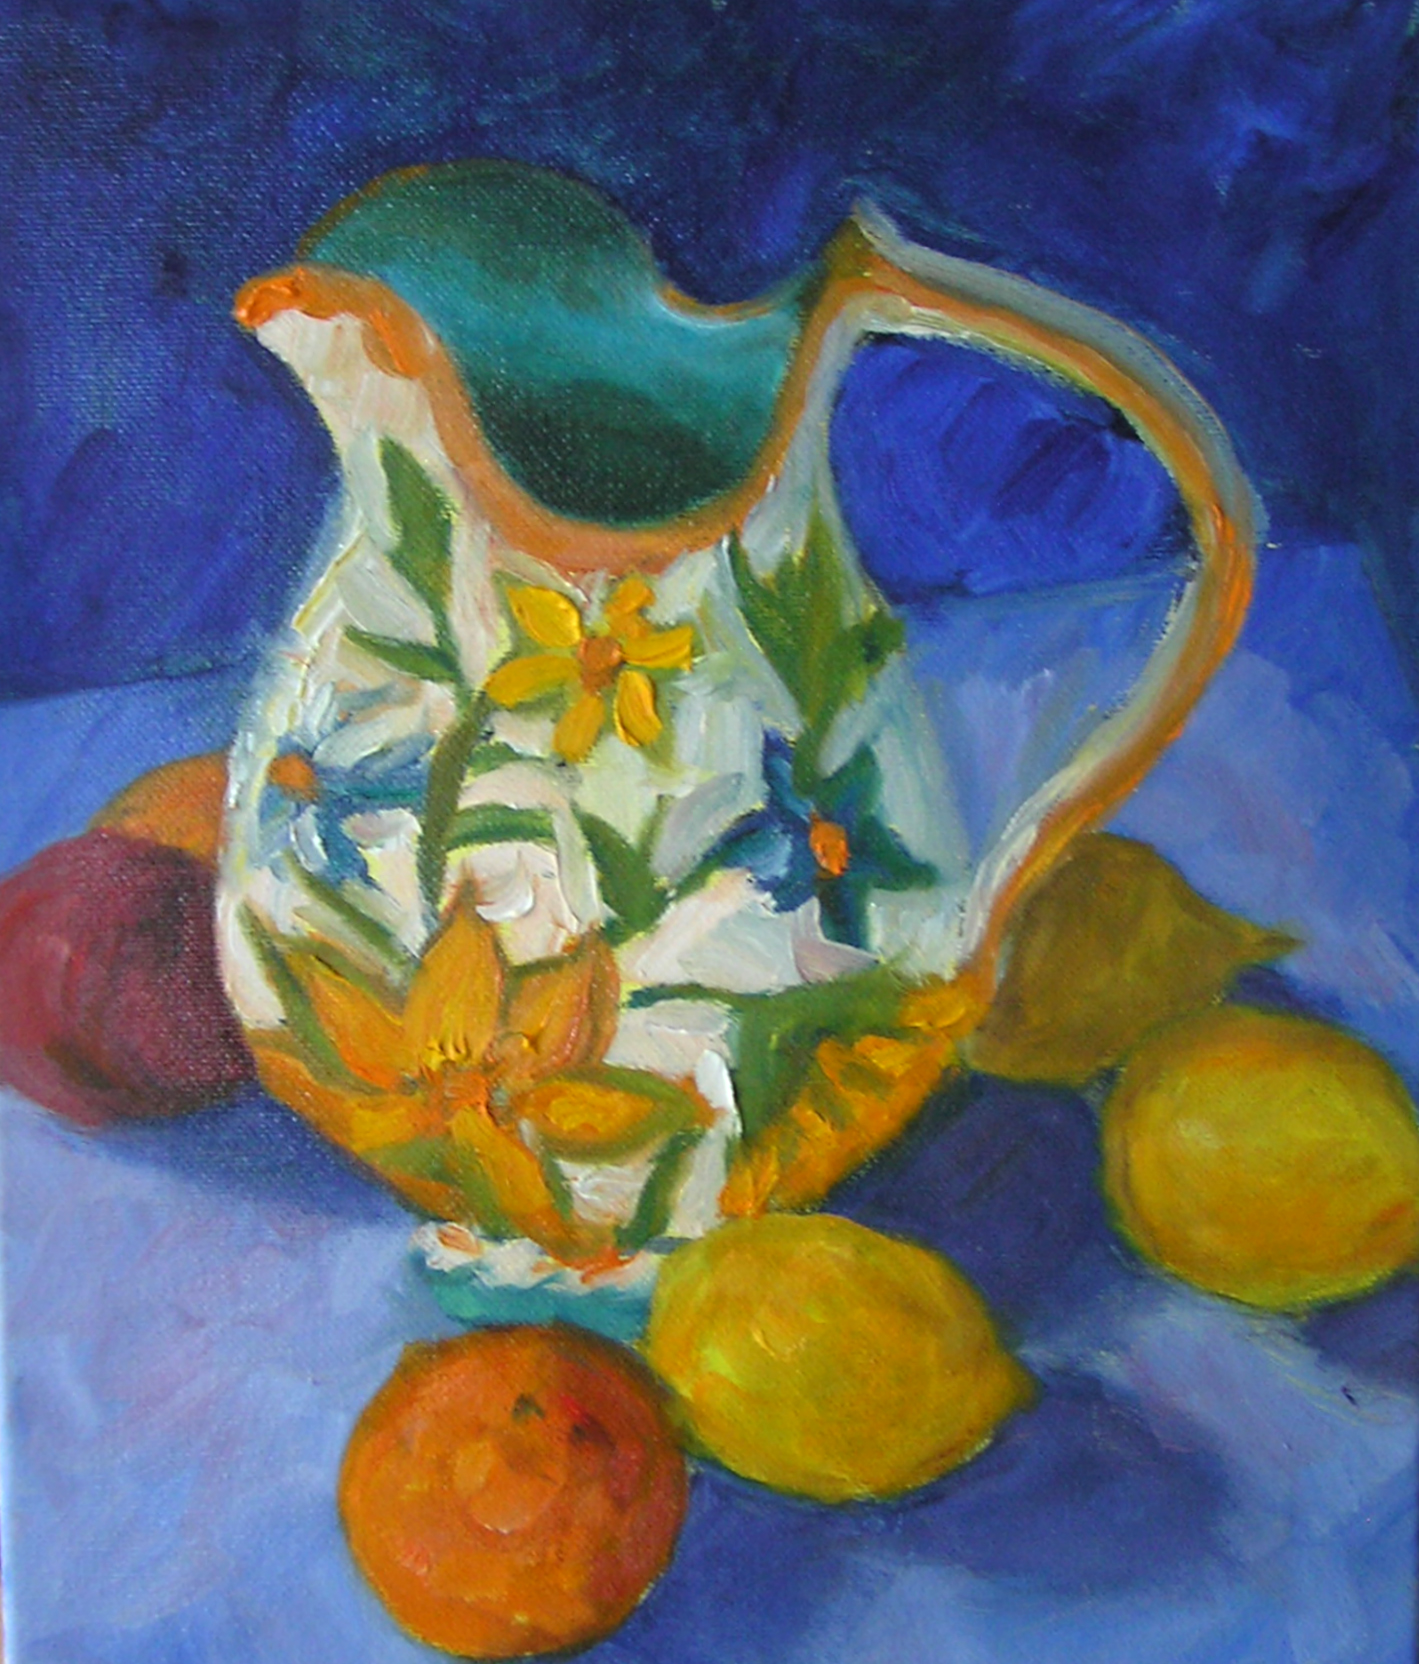 Pitcher and Lemons - Jarrett